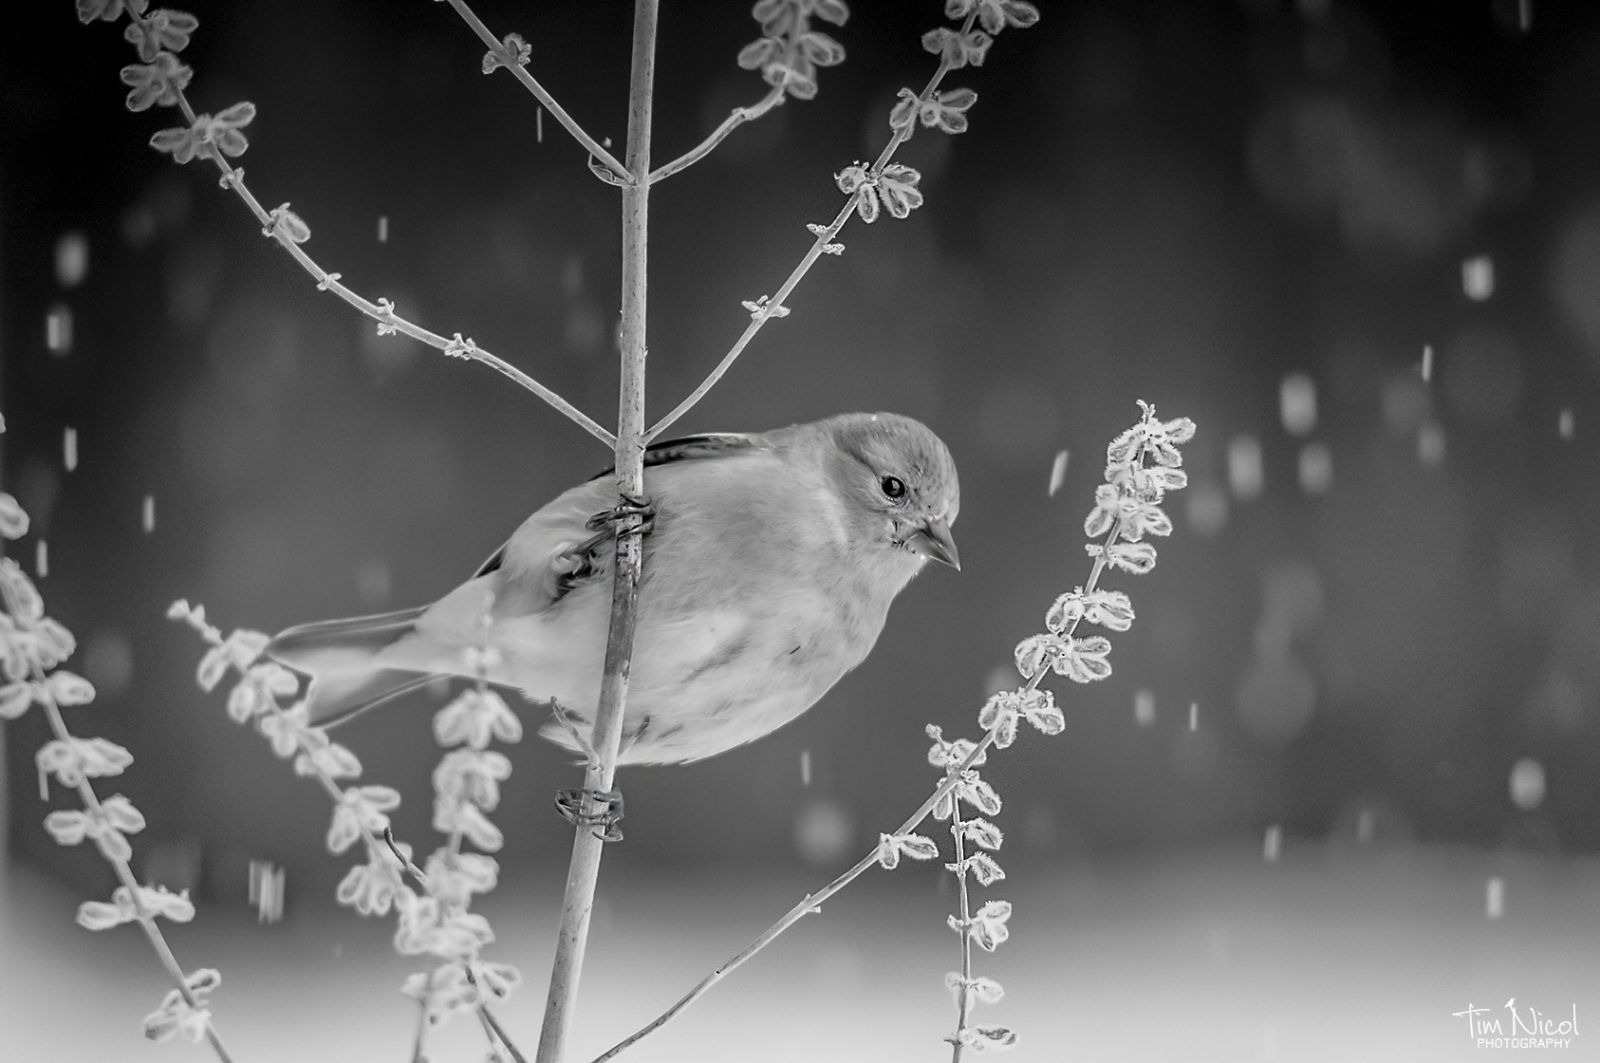 Goldfinch in the Snowfall